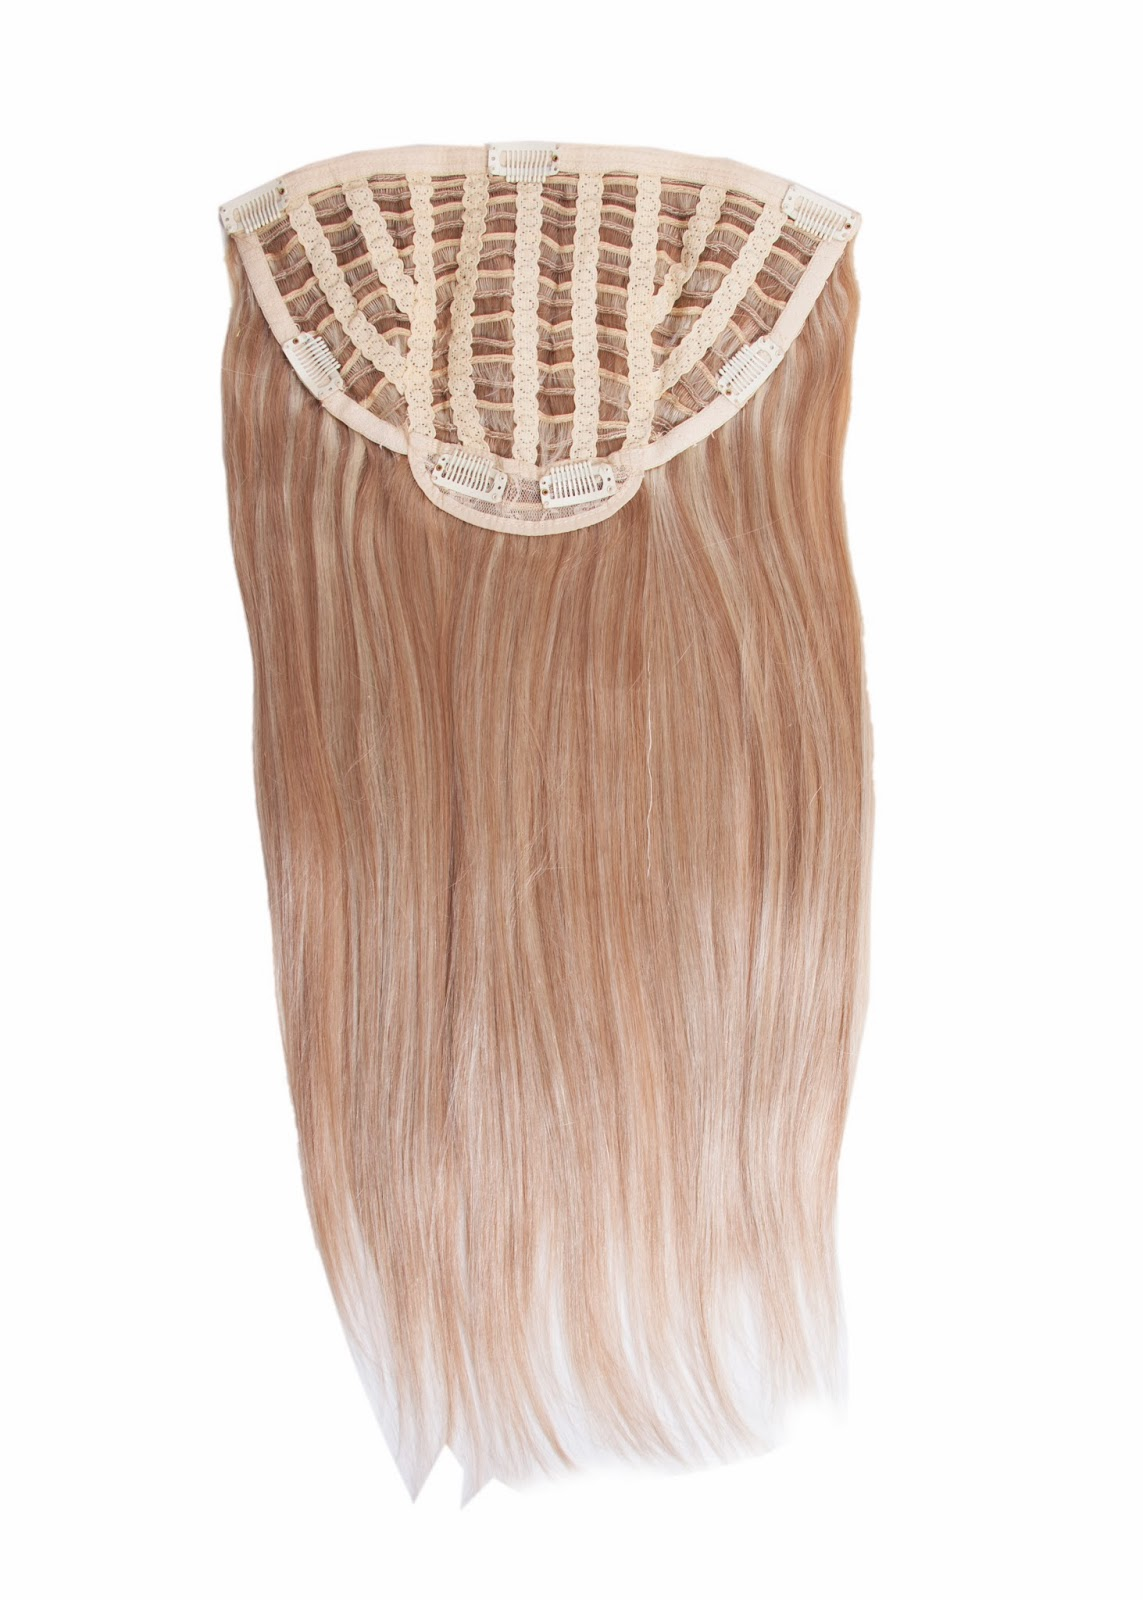 Glamour Extensions One Piece Clip In Human Hair Extensions Human